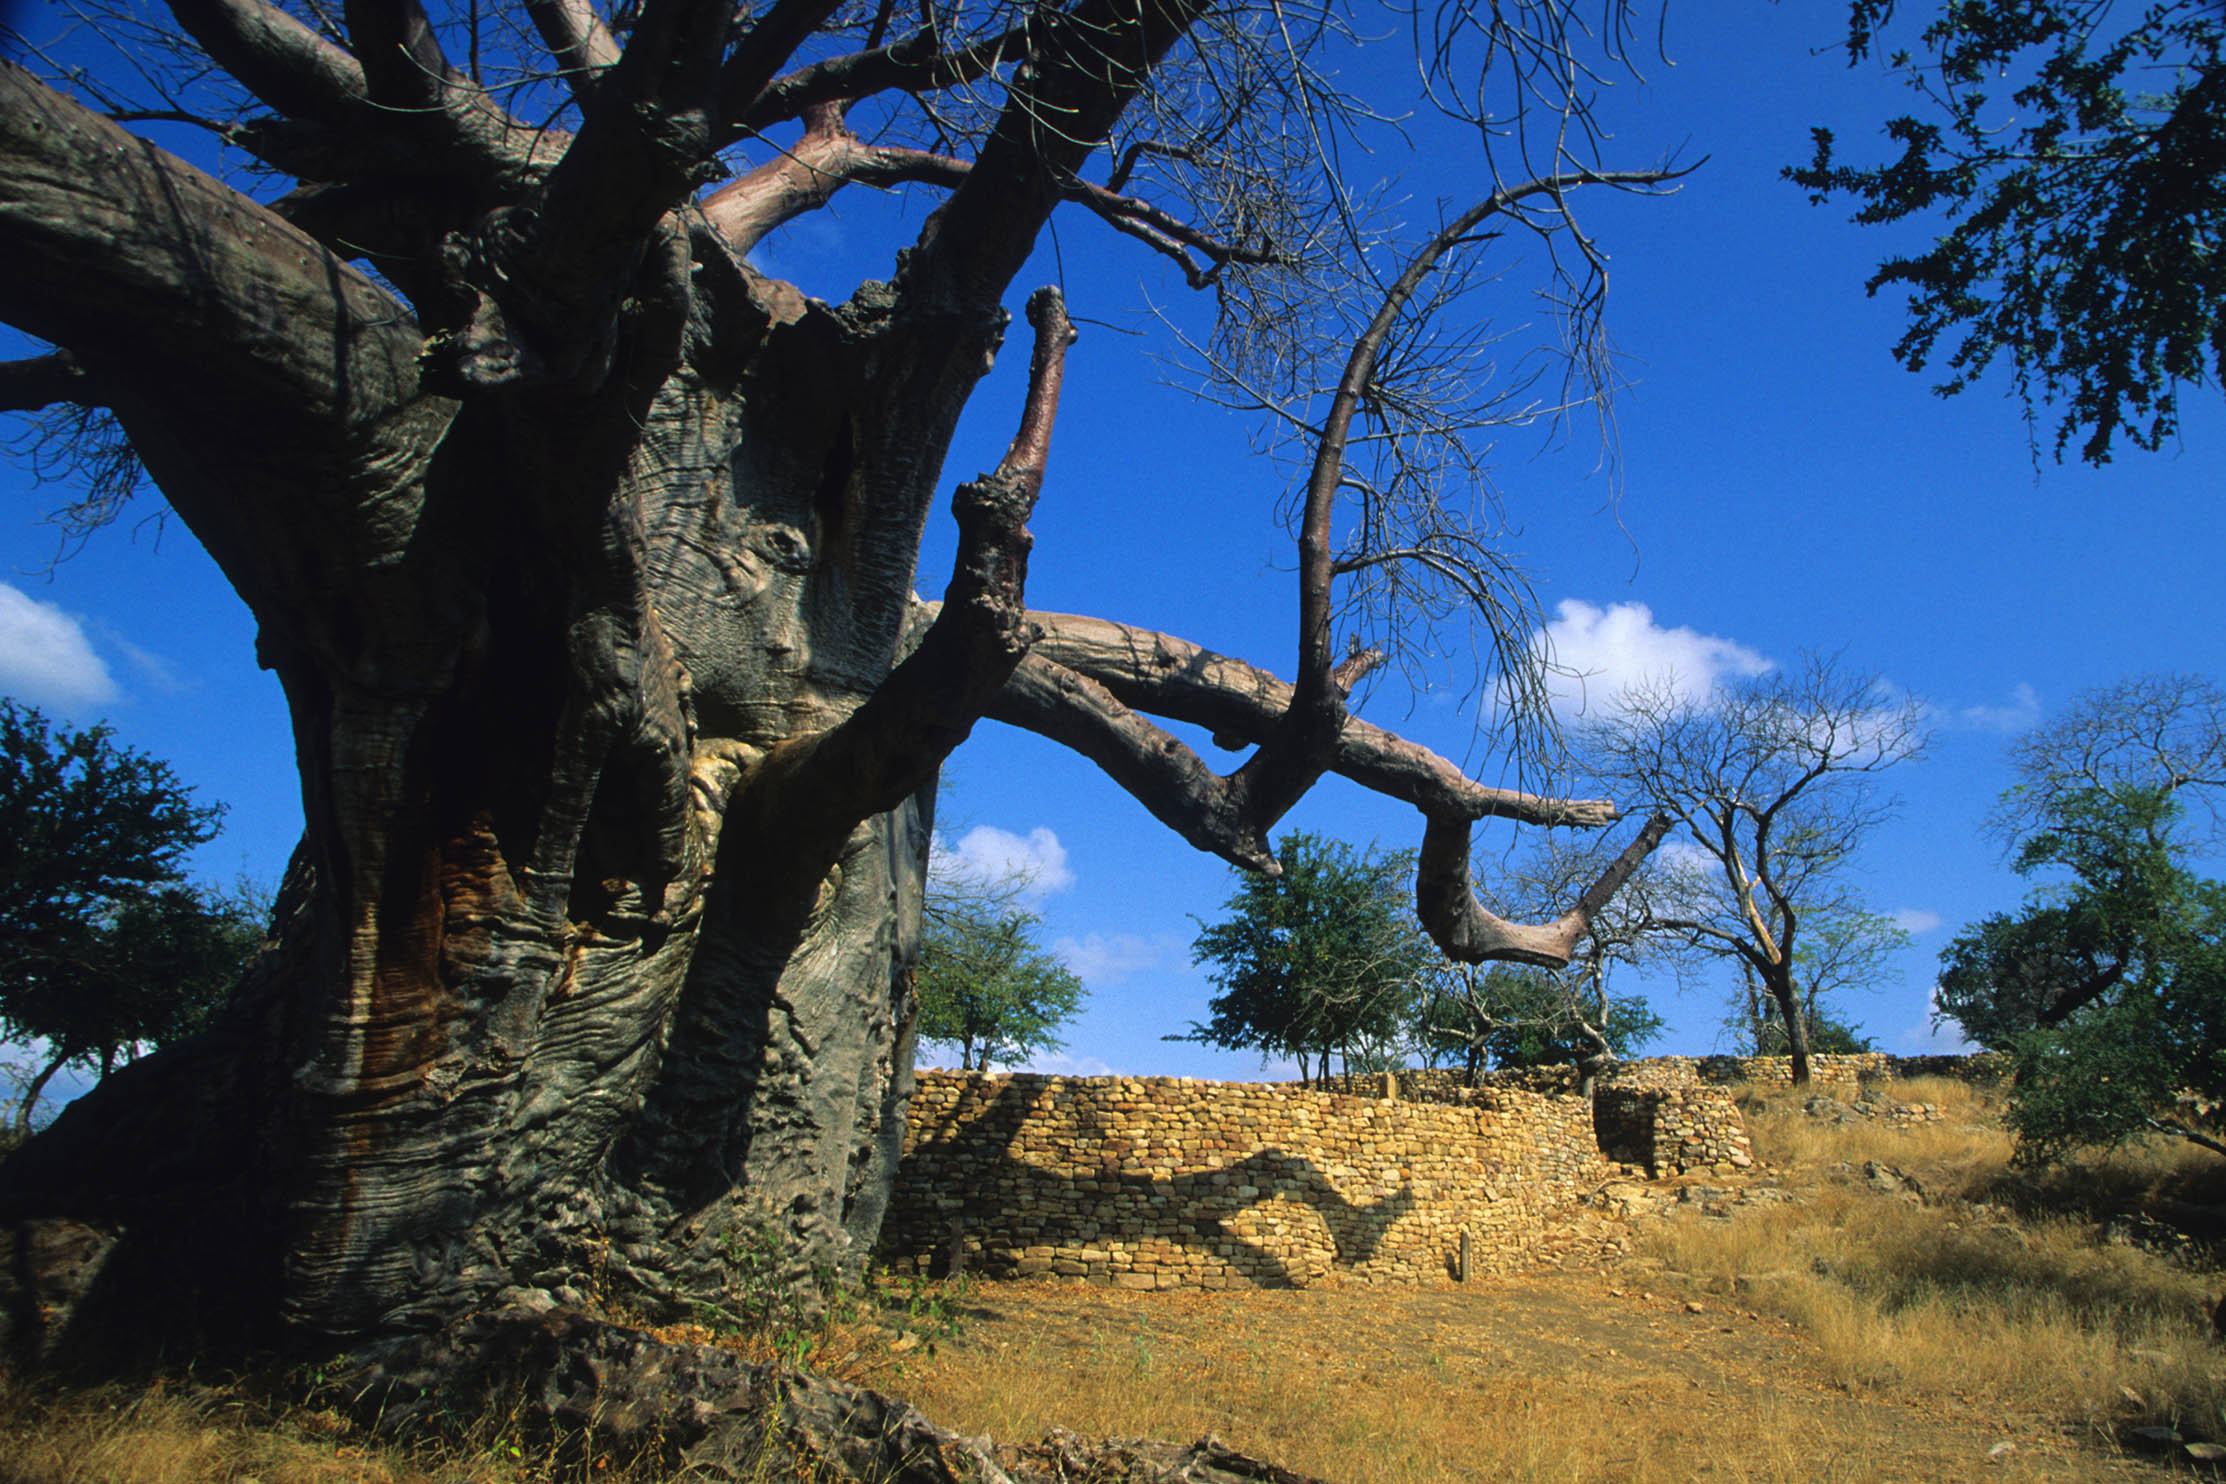 Legend has it that baobabs were planted upside down by the gods as an expression of their wrath long before the Mapungubwe ancestors set foot on this land. (Photo from Gallo Images)